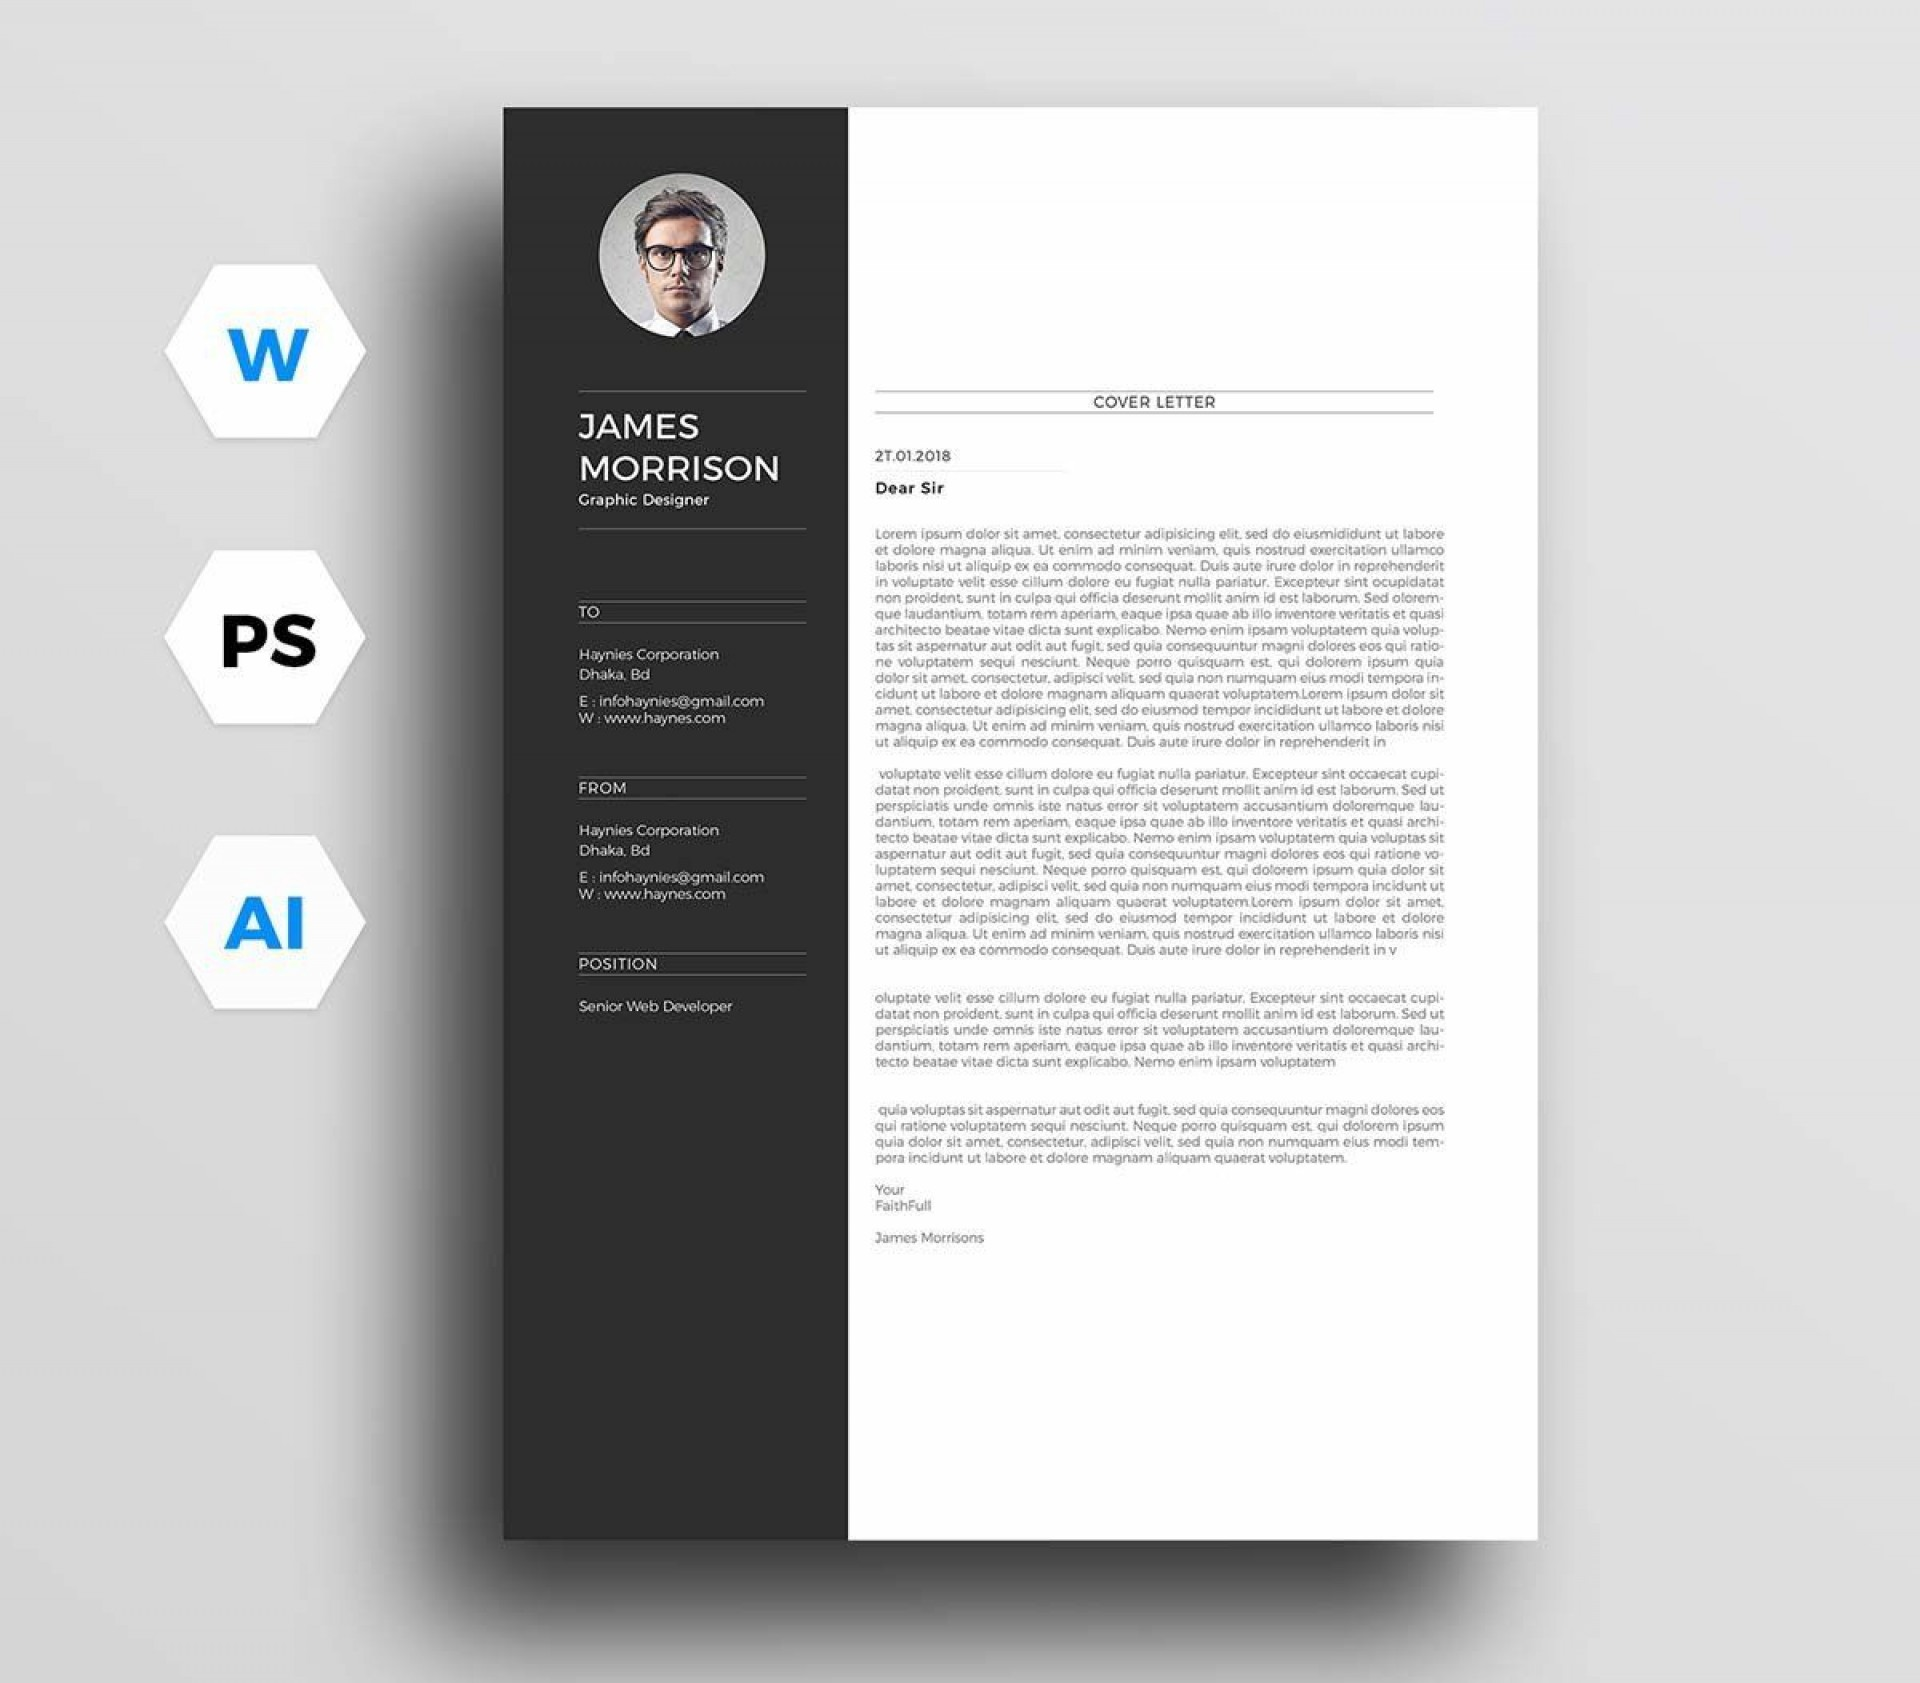 005 Striking Free Printable Cover Letter Template High Def  Templates Resume Fax Sheet Word1920